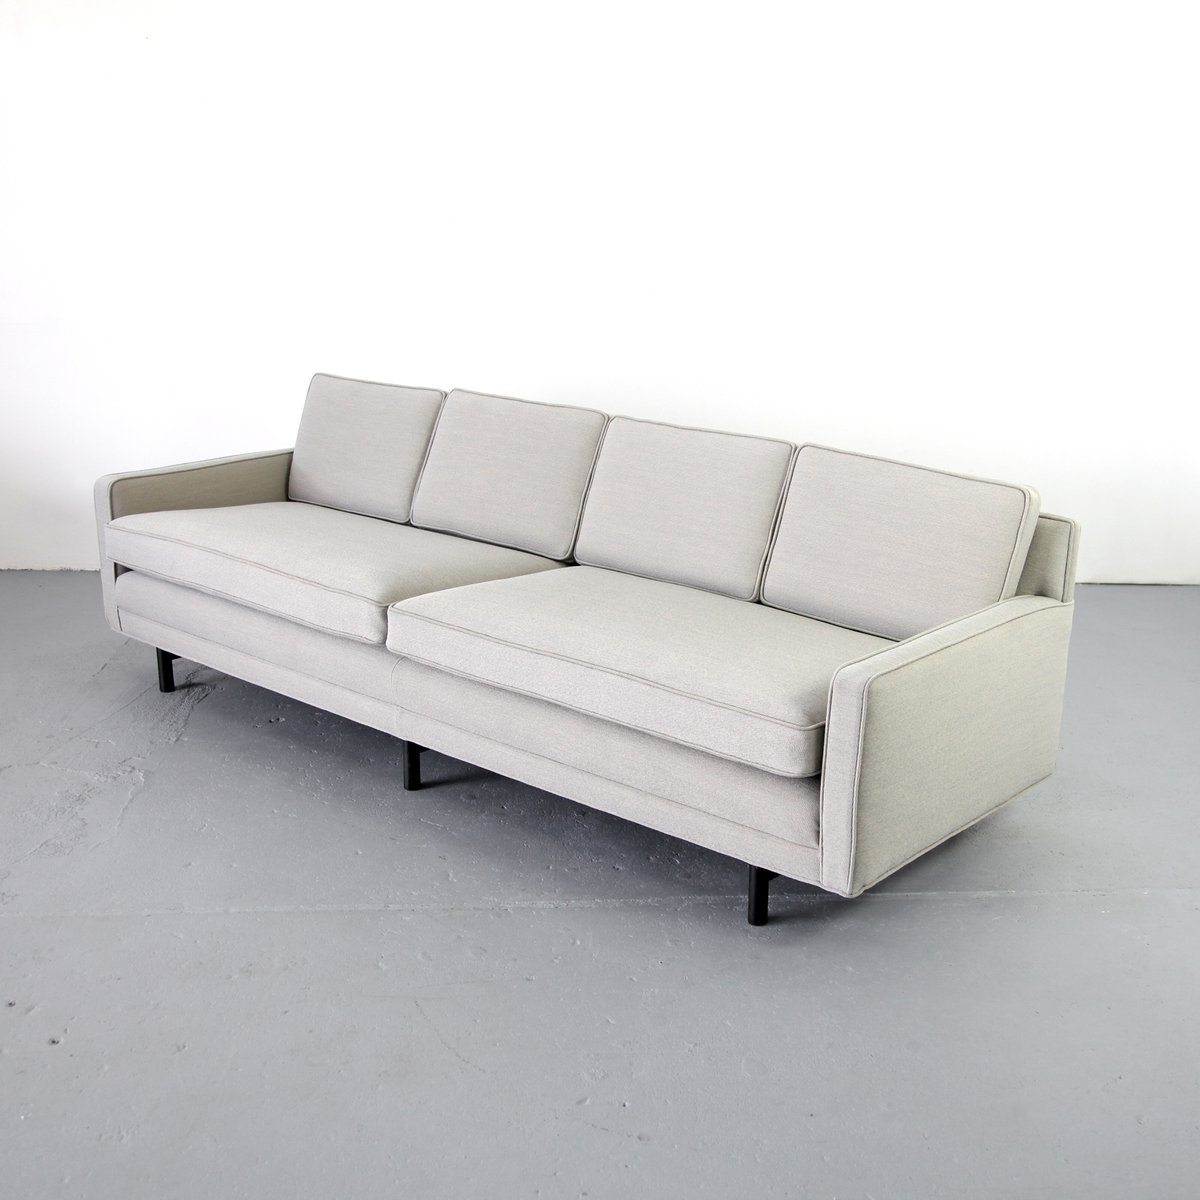 4 seater sofa by paul mccobb for directional for sale at for Sofa 7 seater